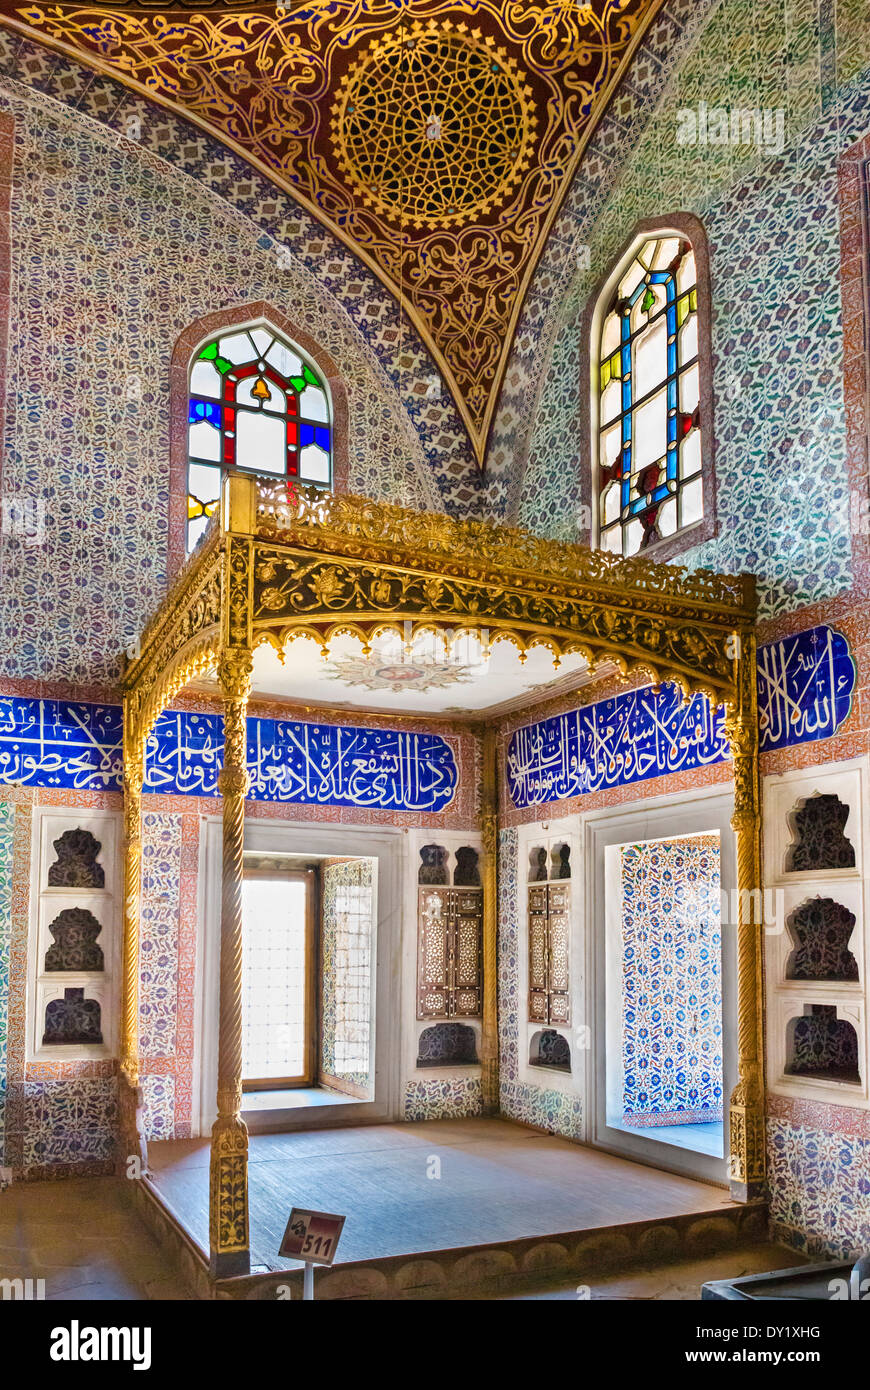 The Privy Chamber of Sultan Murad III in the Harem of the Topkapi Palace (Topkapi Sarayi), Sultanahmet district, Istanbul,Turkey - Stock Image